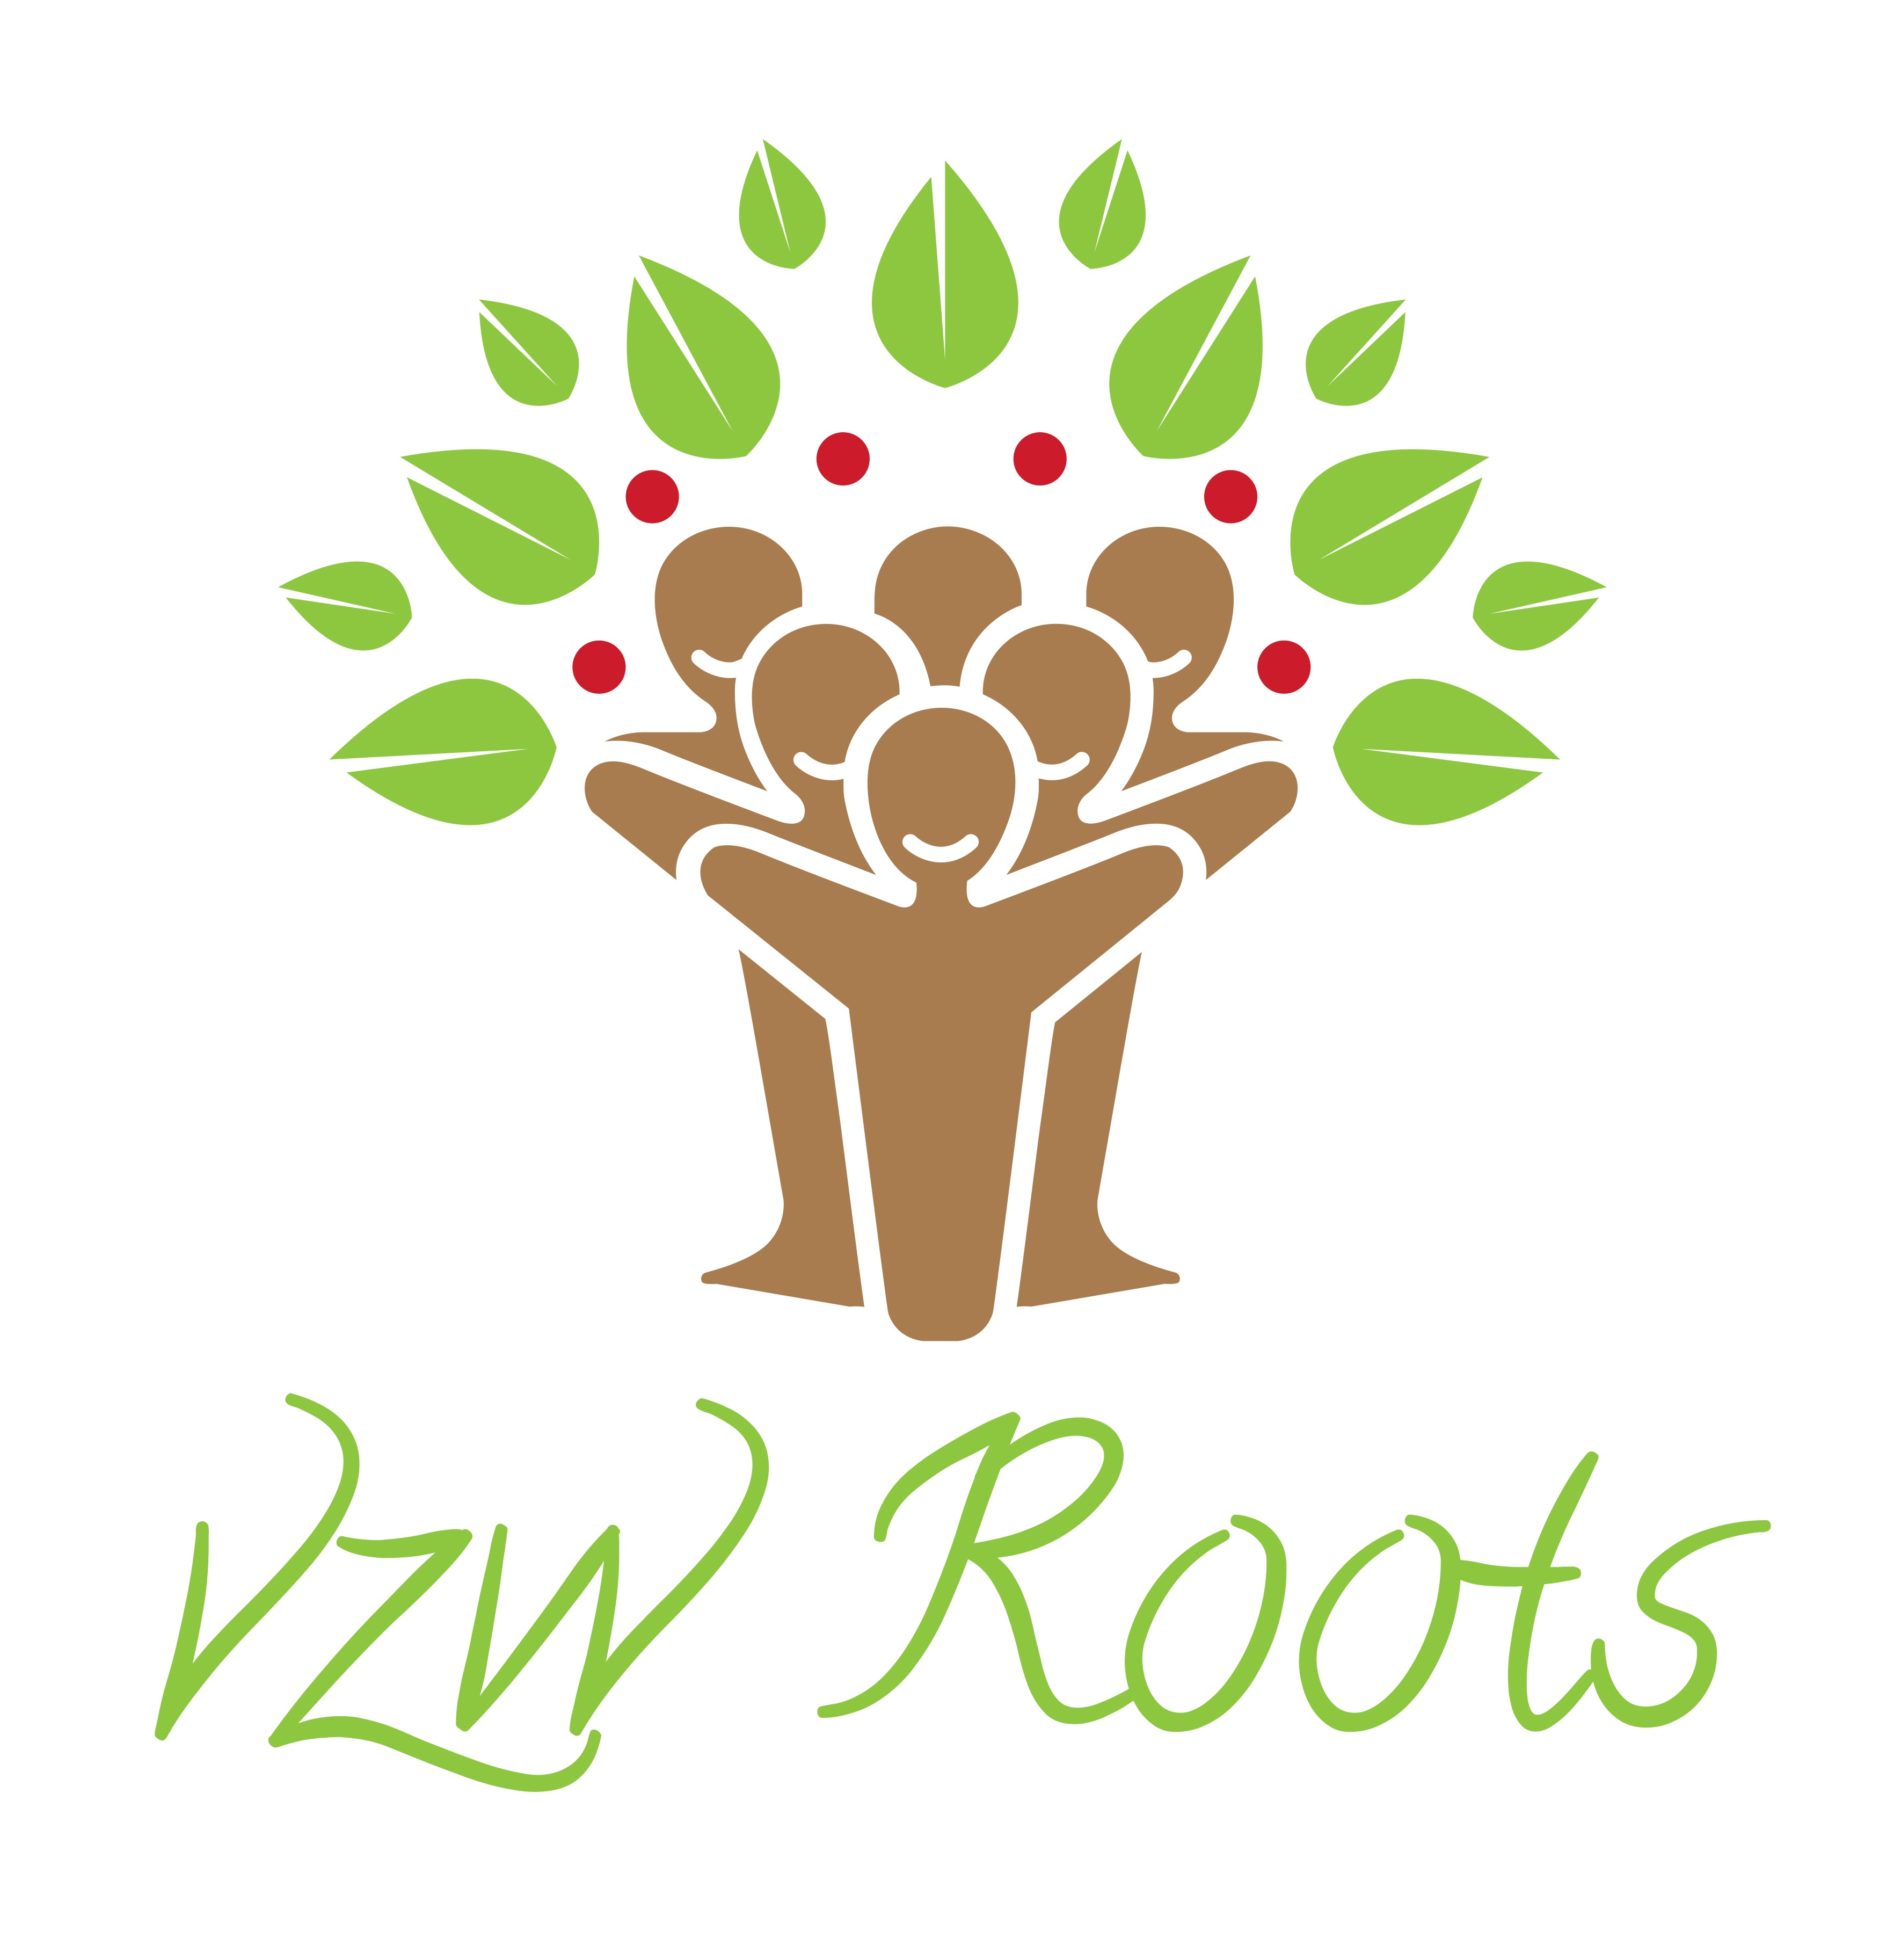 Logo VZW Roots